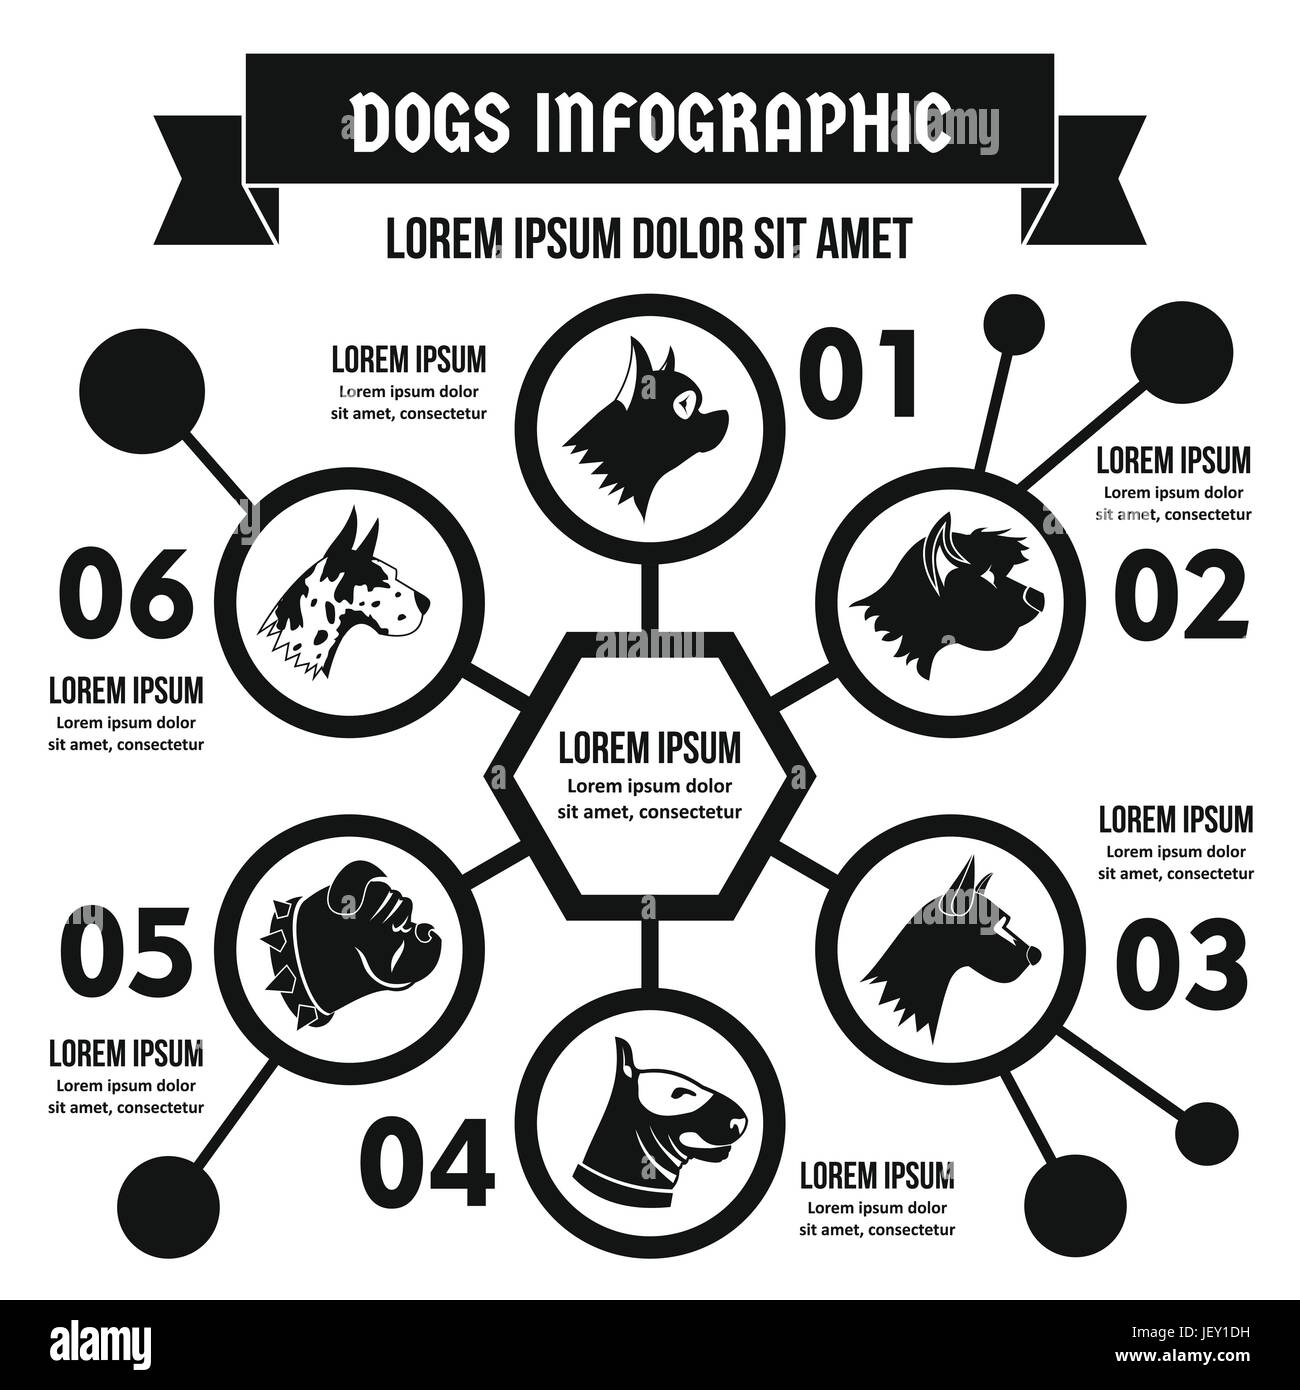 Dog breeds infographic concept, simple style - Stock Image